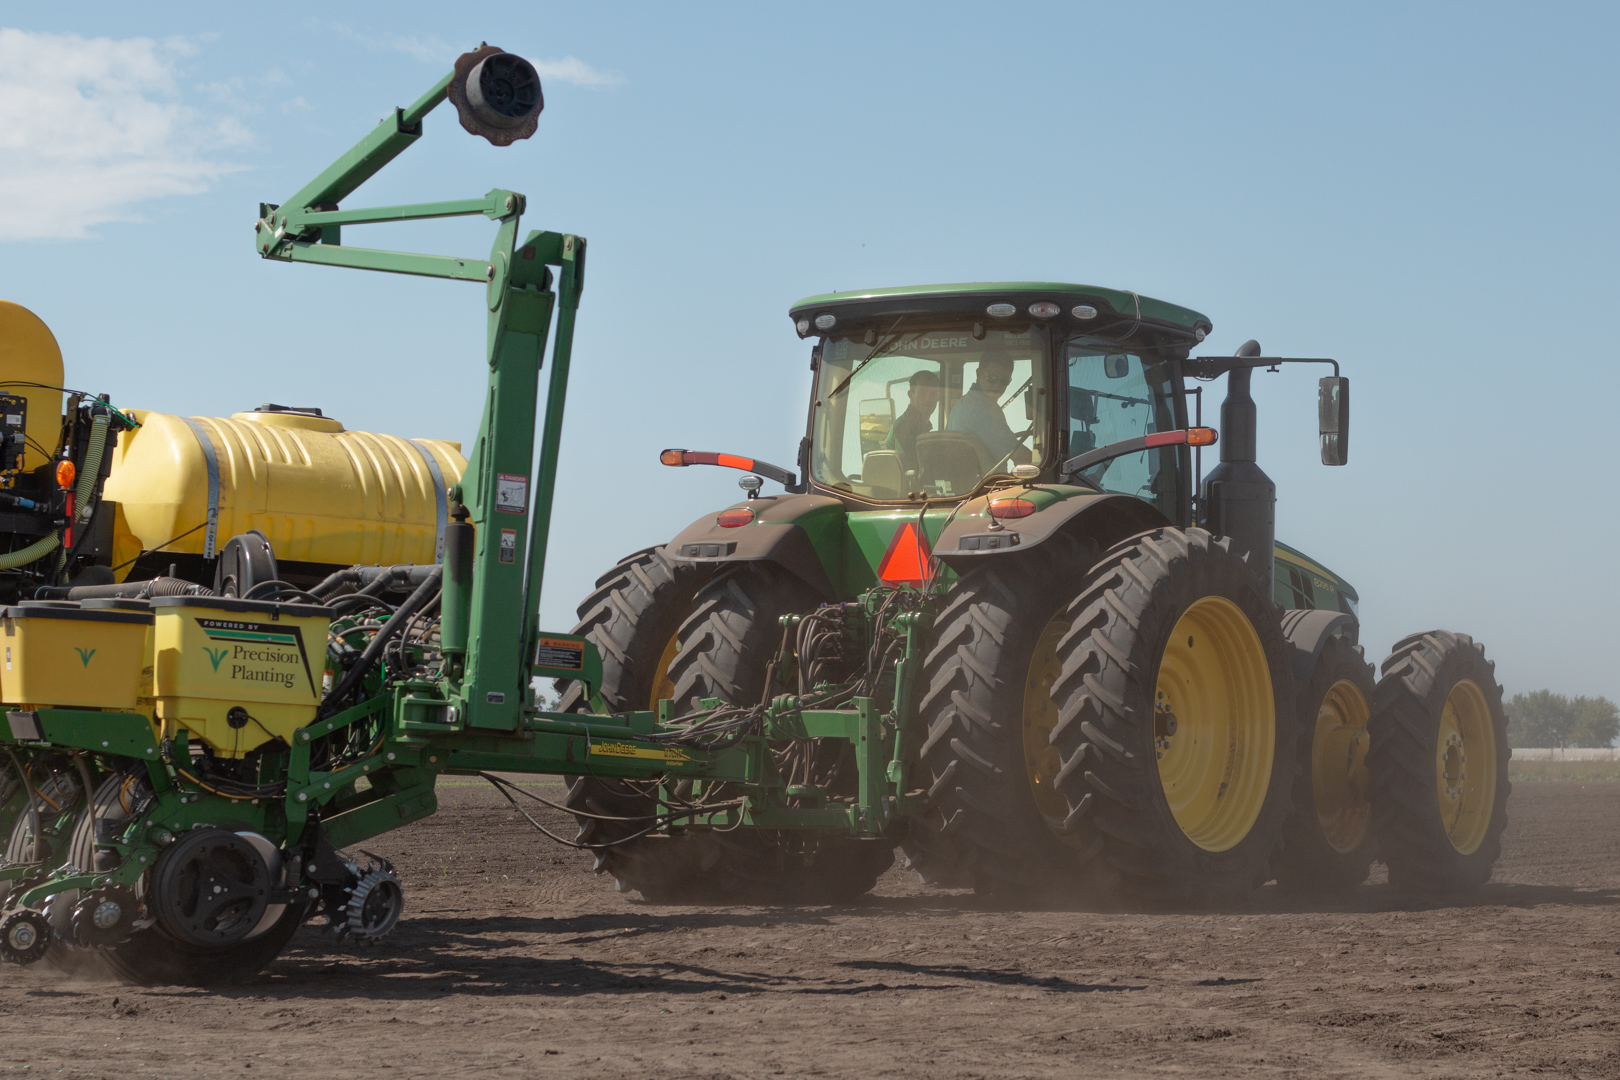 Farmers at the PTI Farm can drive new equipment and test the latest technology.